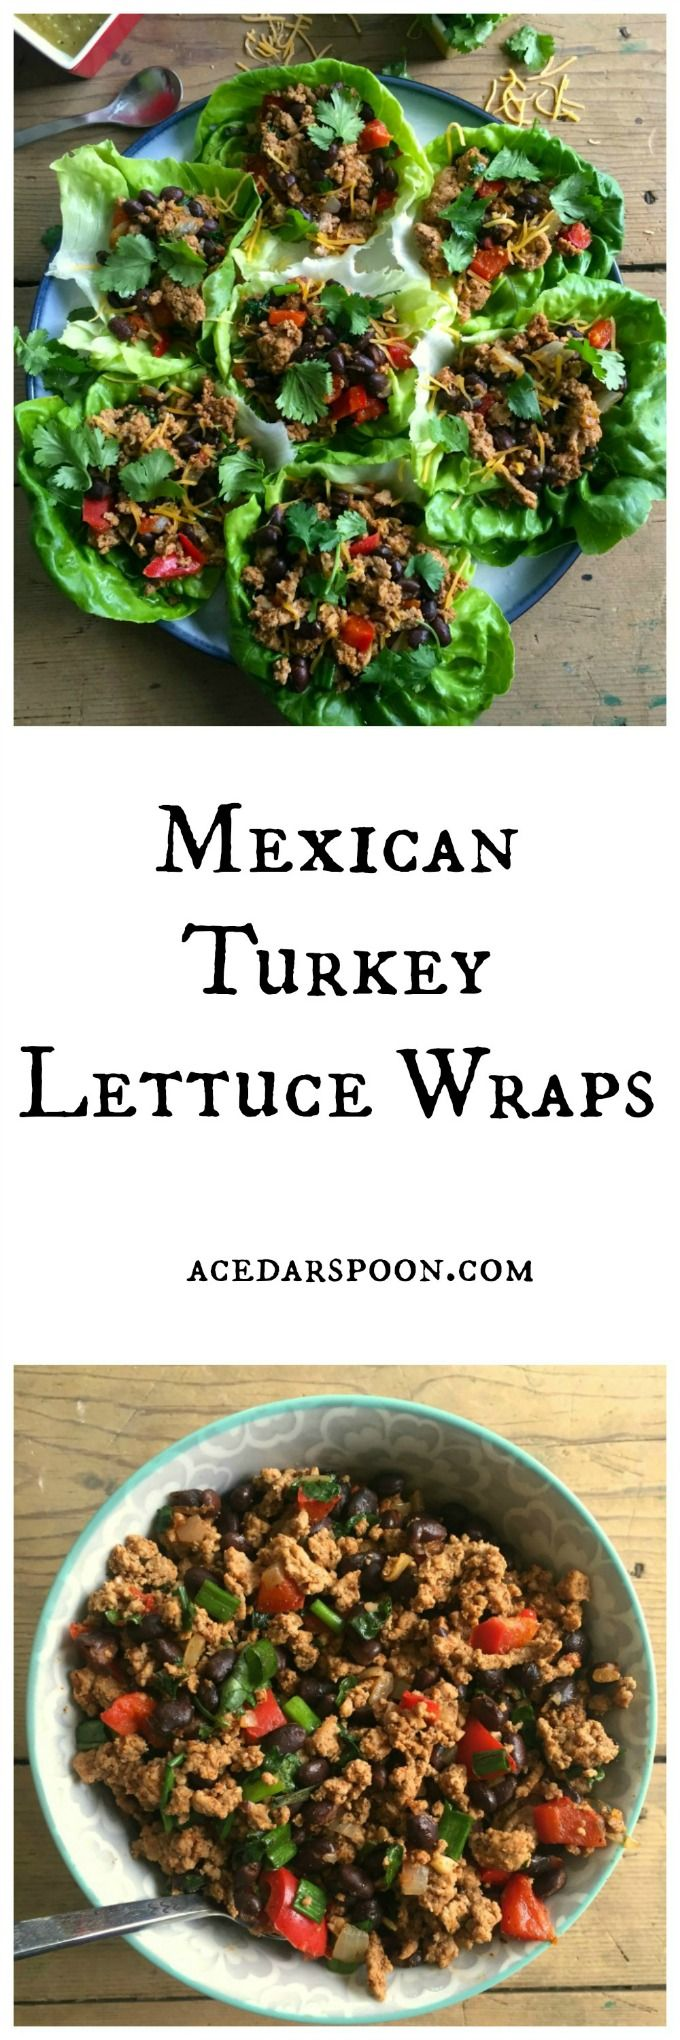 Mexican Turkey Lettuce Wraps are made in under 20 minutes. If you like tacos, this will be right up your alley but a lighter, healthier version with the same flavor. This makes a great light lunch, or an easy dinner for the family.// A Cedar Spoon